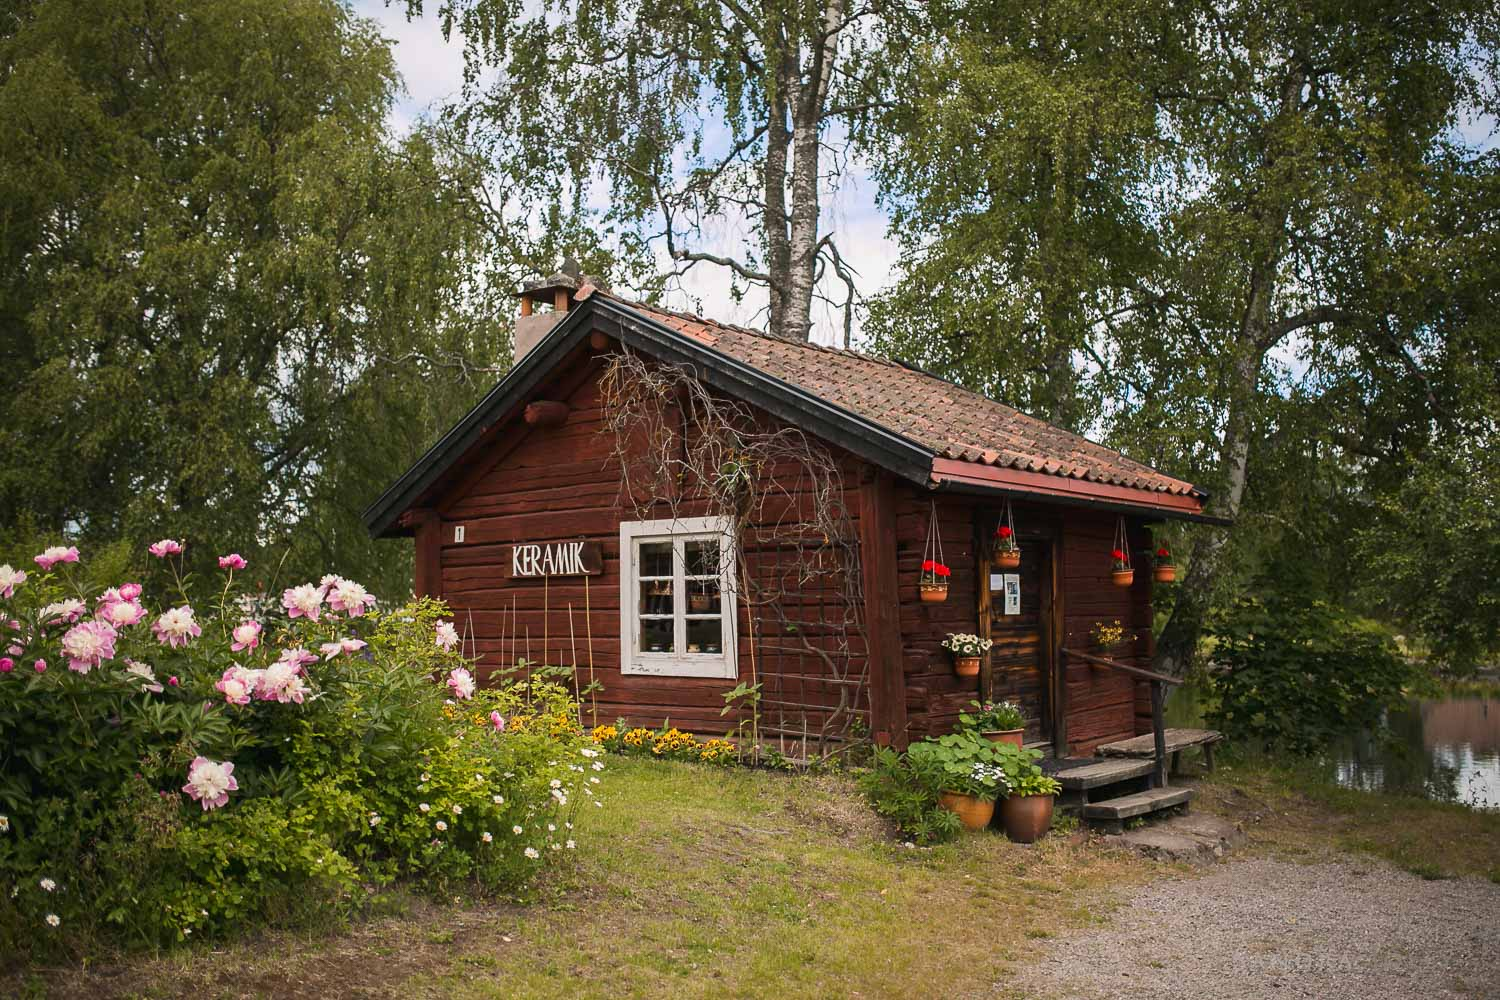 red-log-cabin-in-dalarna.jpg